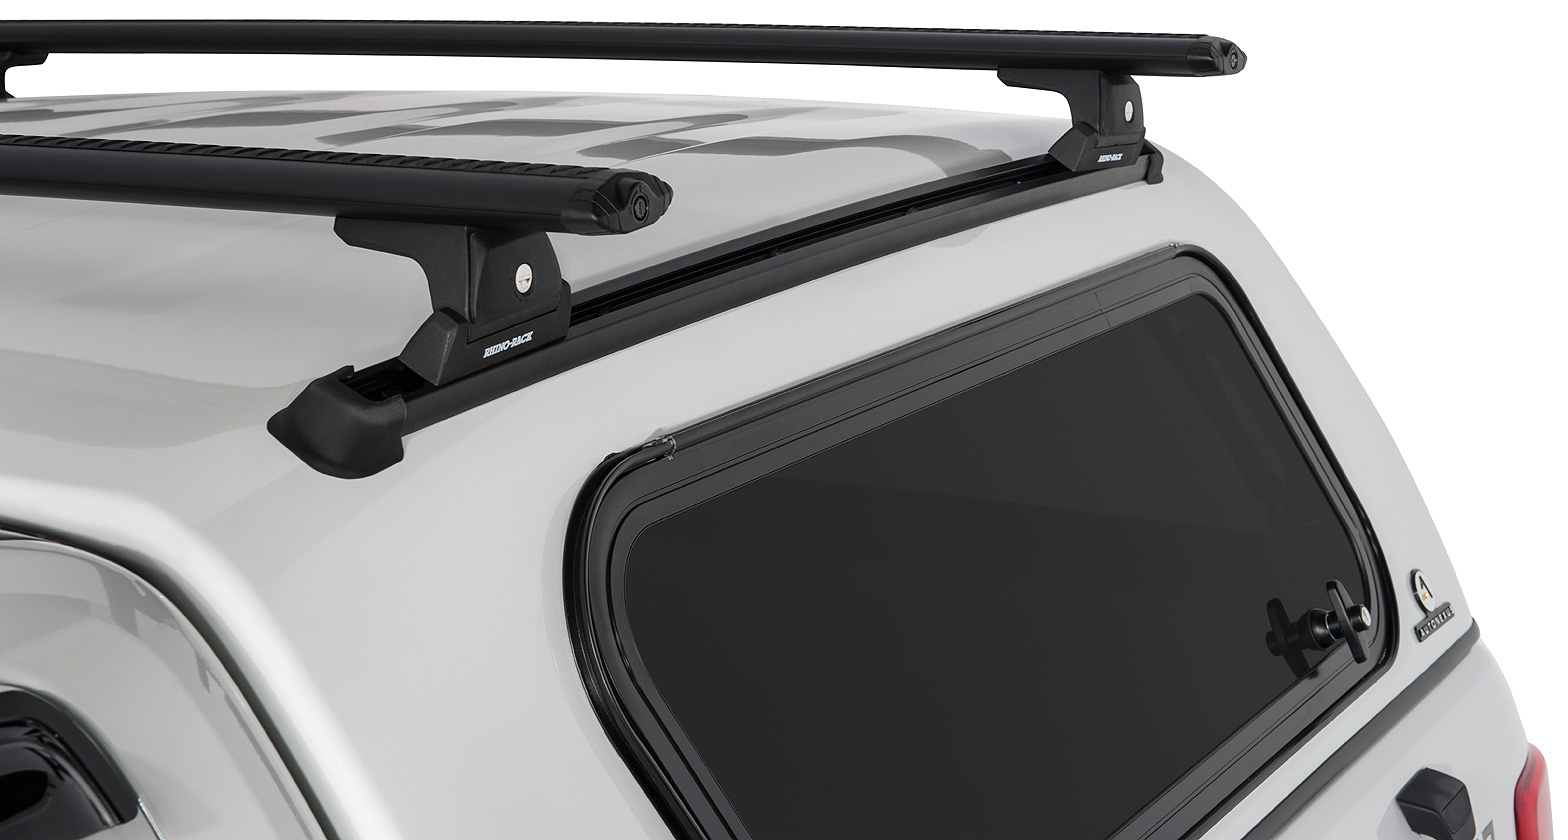 Auto Nexus Canopy - Vortex RLT600 Black 2 Bar Roof Rack | Rhino-Rack : roof racks for canopies - memphite.com